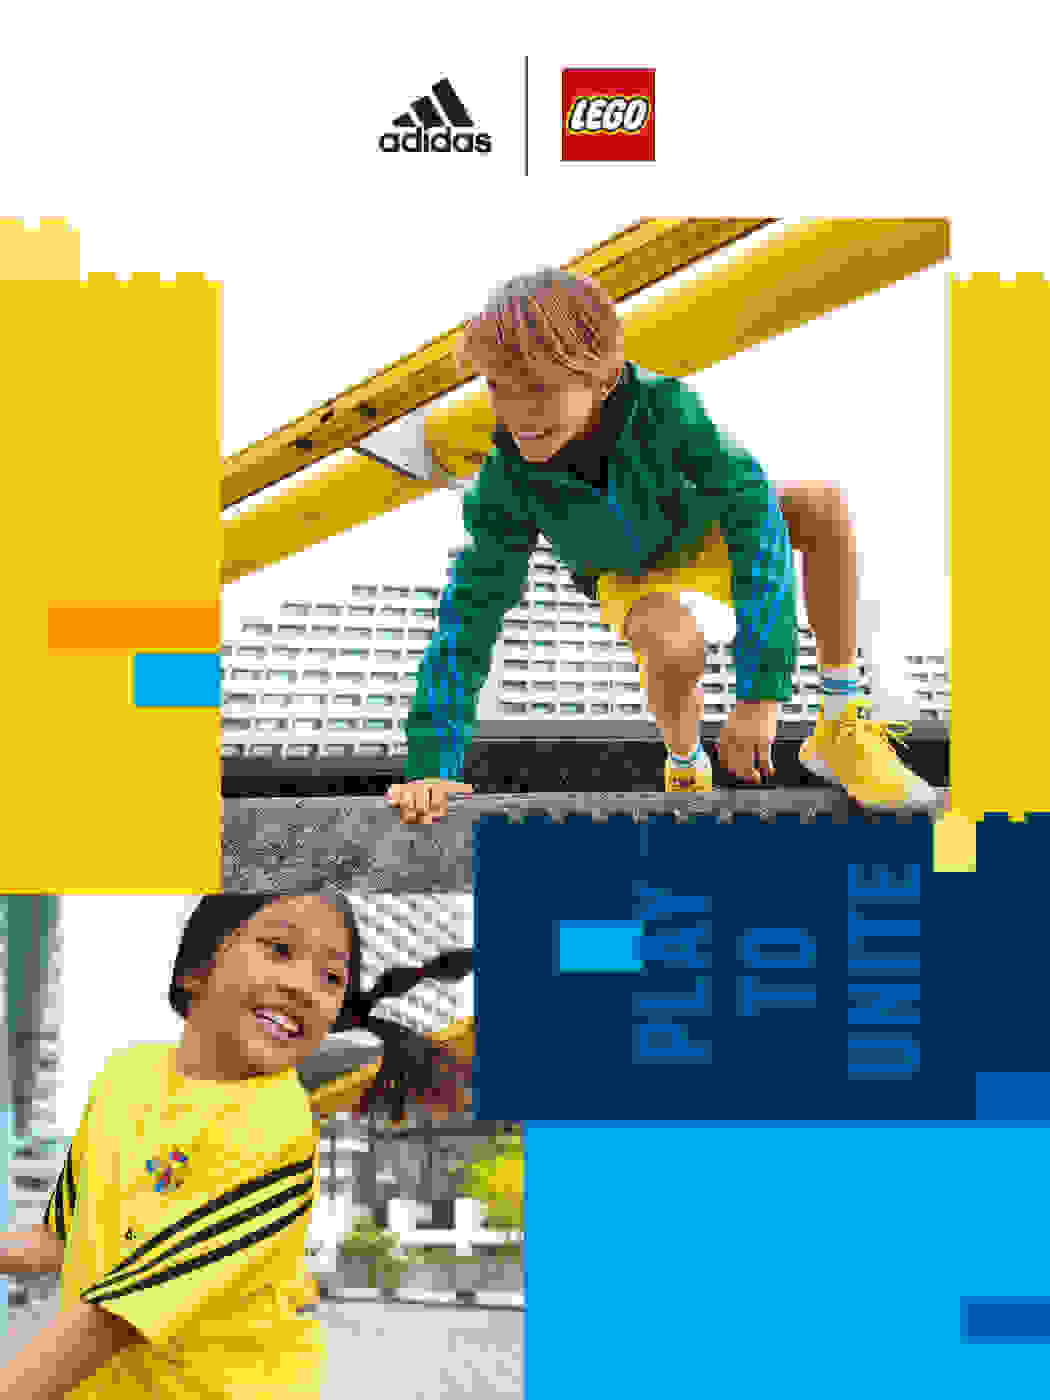 Kids wearing colourful adidas LEGO® outfits.